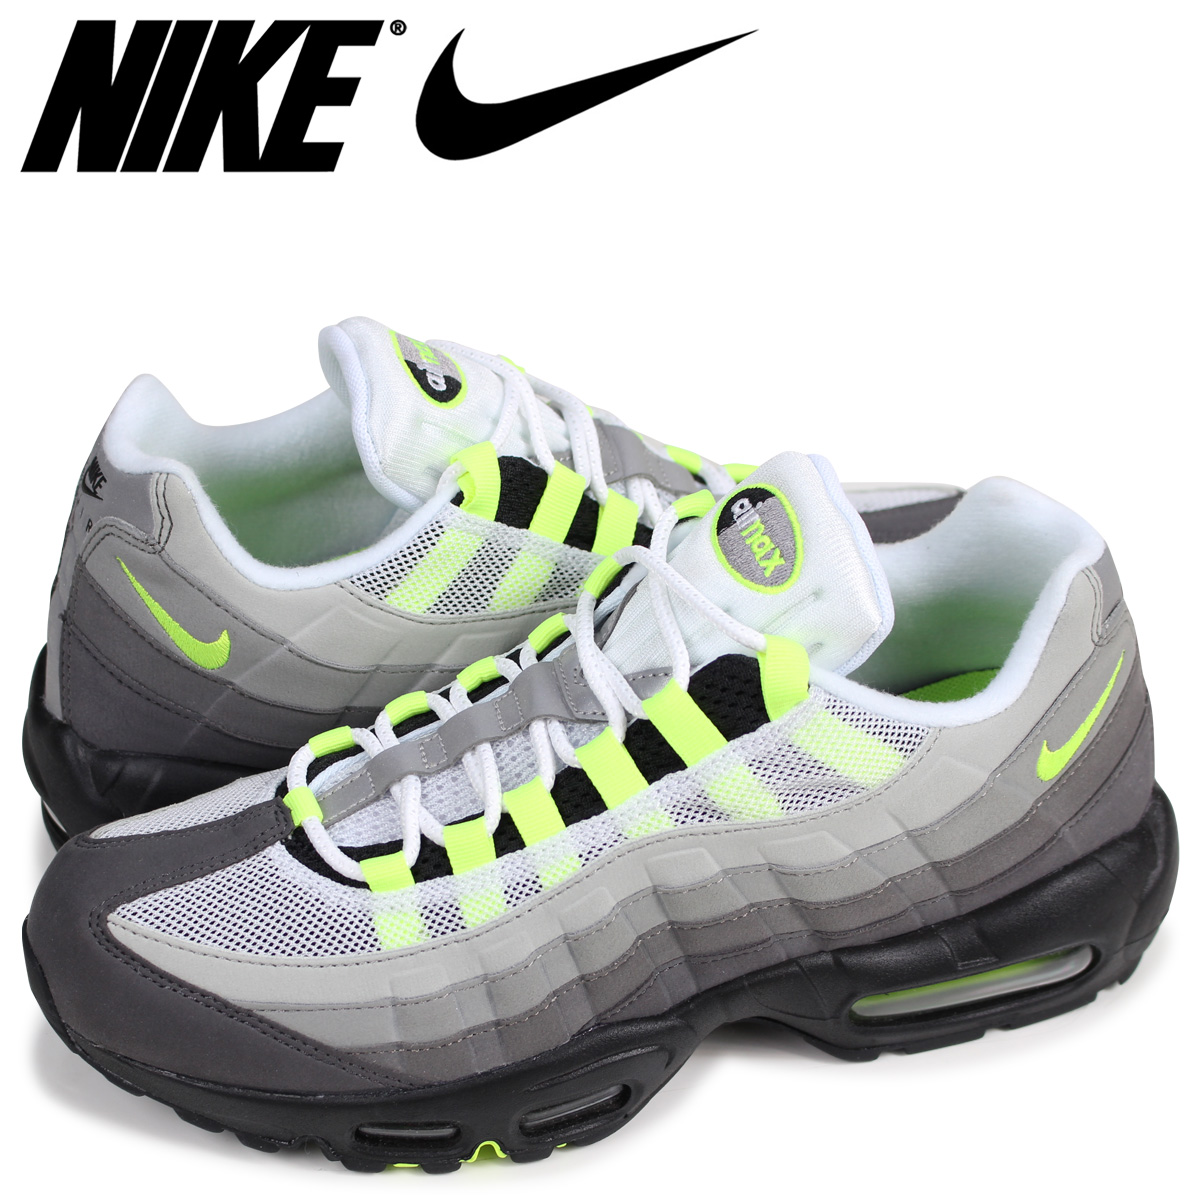 separation shoes a1c18 a4c79 NIKE AIR MAX 95 OG Kie Ney AMAX 95 sneakers men neon yellow 554,970-071 ...